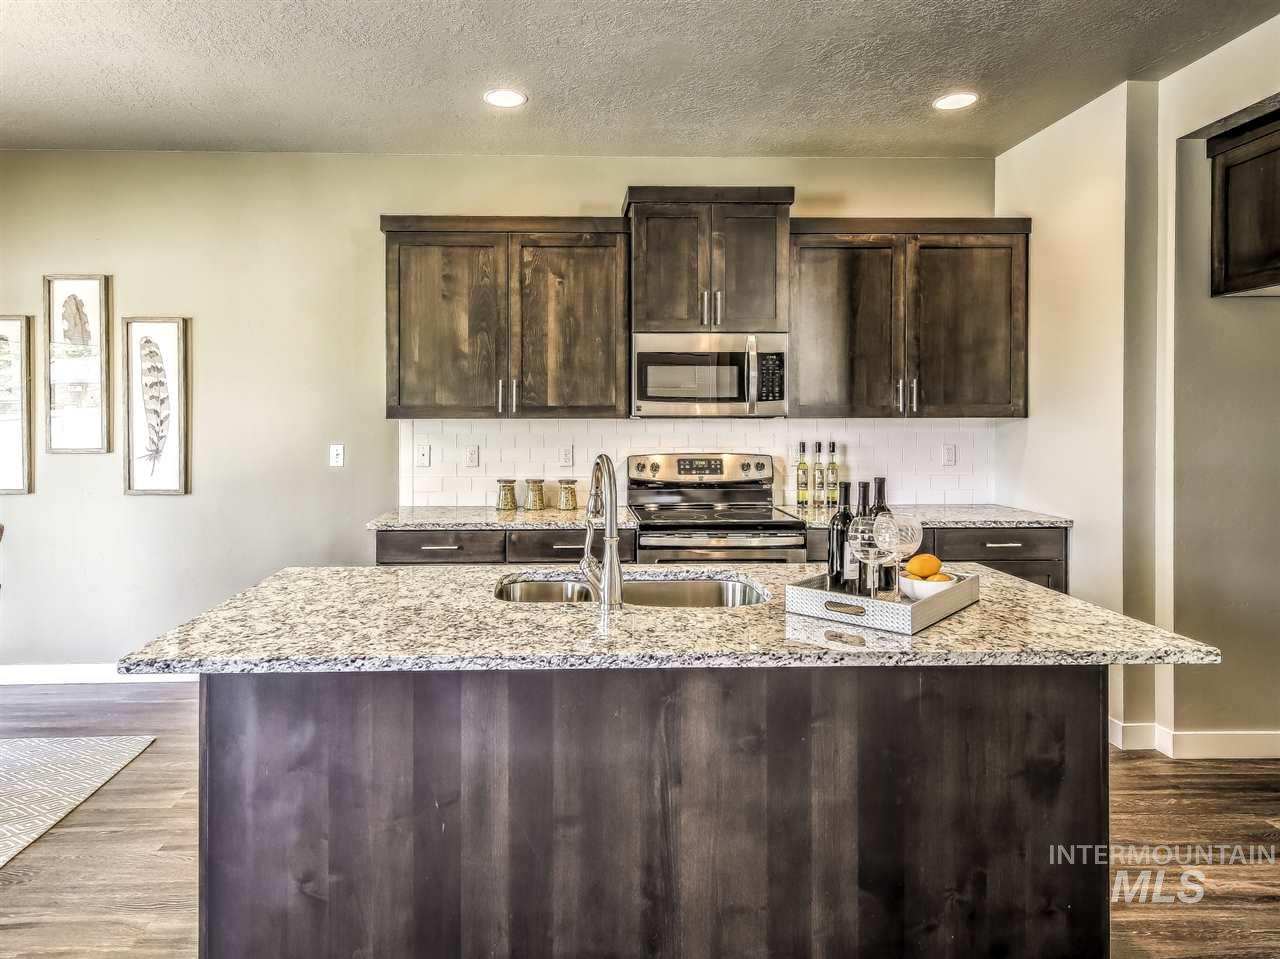 "Sedona | Blackrock Homes. Completion date is 06/20/19. Dark stained kitchen cabinets, gray quartz counters, Brushed Nickel Hardware & Fixtures. Built-in bench & cubbies, custom cabinets w/ full tile backsplash, SS appliances & secret ""mouse hole."" Large master suite upstairs w/ dual vanity + 3 more bdrms & a loft that flexes as 2nd TV area. Dual vanity at main bathroom.  Pics and tour similar. LANDSCAPE MAINTAINED BY HOA, NO MOWING!!"